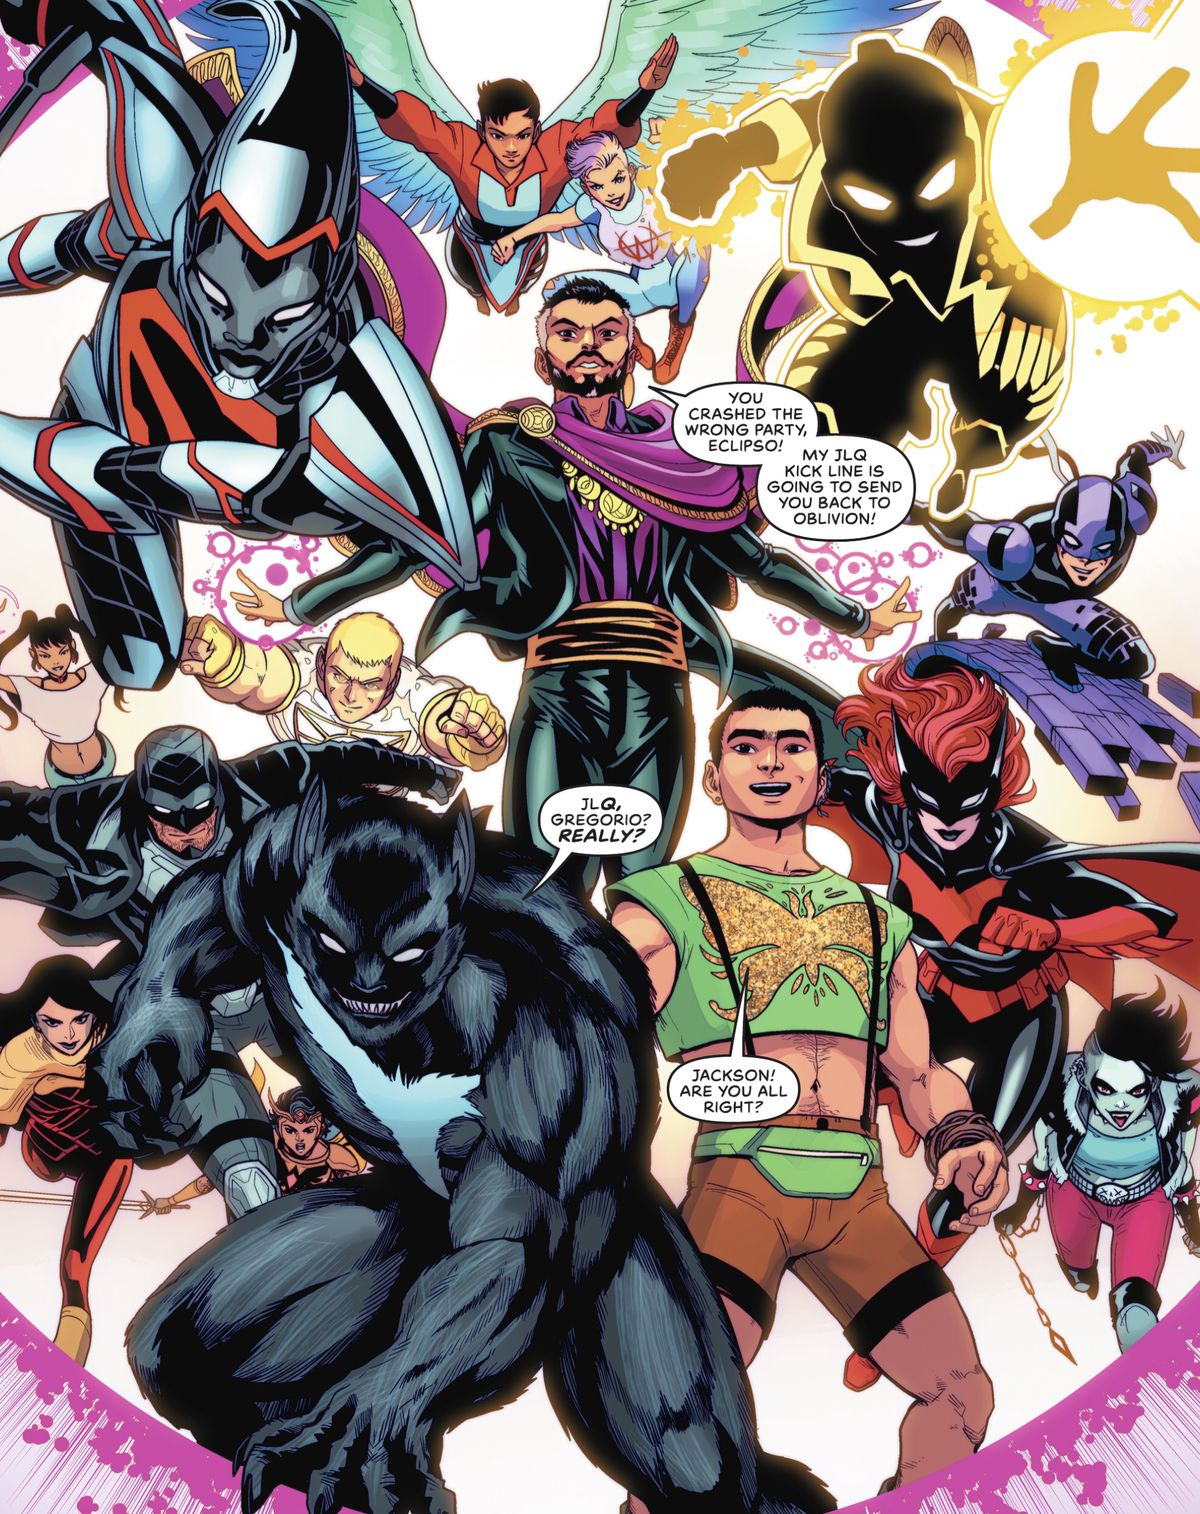 """""""You crashed the wrong party, Eclipso! My JLQ kick line is going to send you back to oblivion!"""" calls Gregorio de la Vega. """"JLQ, Gregorio? Really?"""" his husband, a were-Tasmanian Devil sighs, in DC Pride #1 (2021)."""